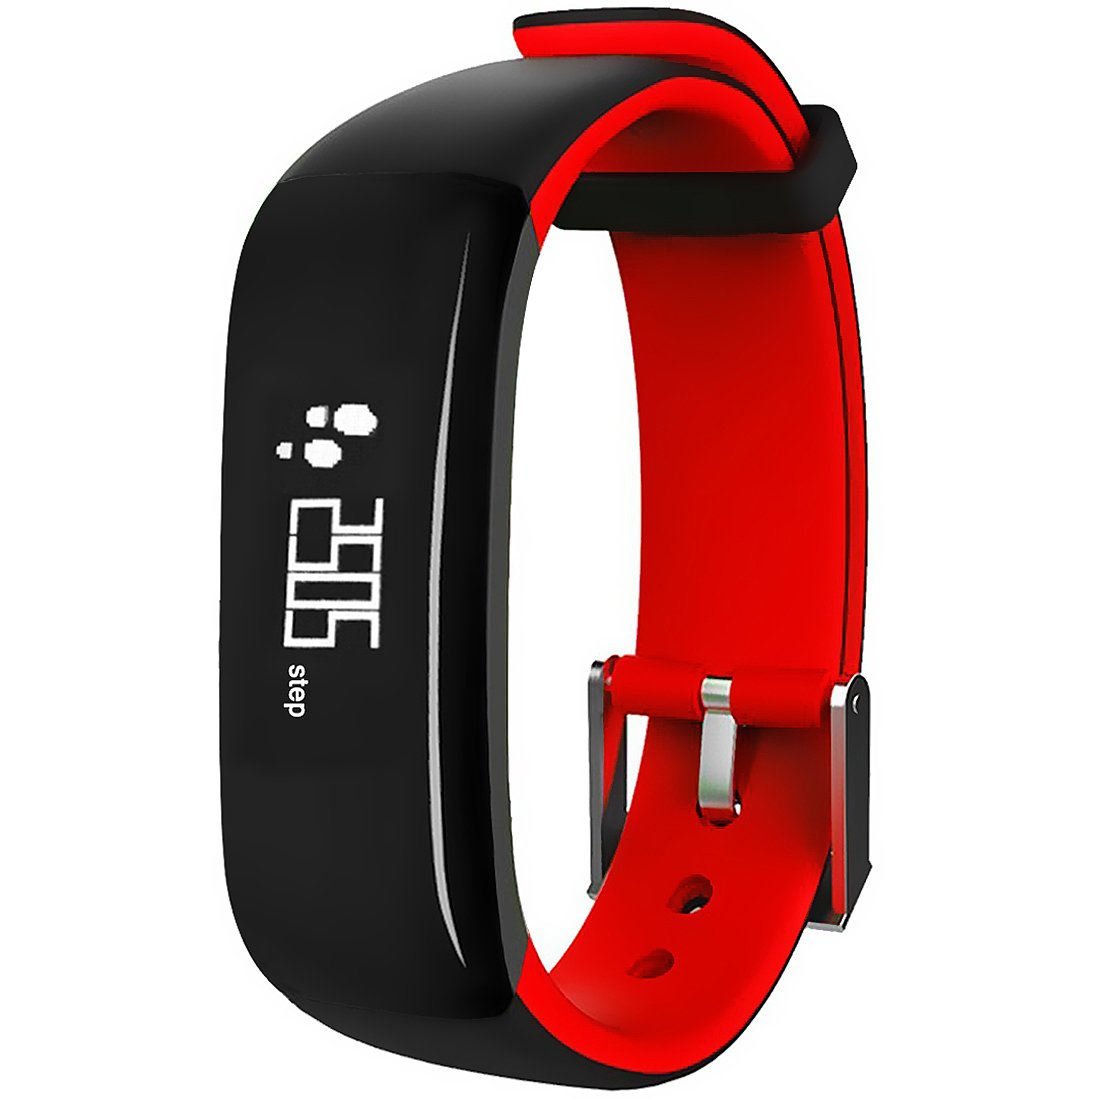 MBHB Waterproof Sport Smart Bracelet, Health Tracker with Heart Rate / Blood Pressure / Sleep Monitor, OLED Pedometer Bluetooth 4.0 Fitness Tracker for iOS Android Smartphones, Red